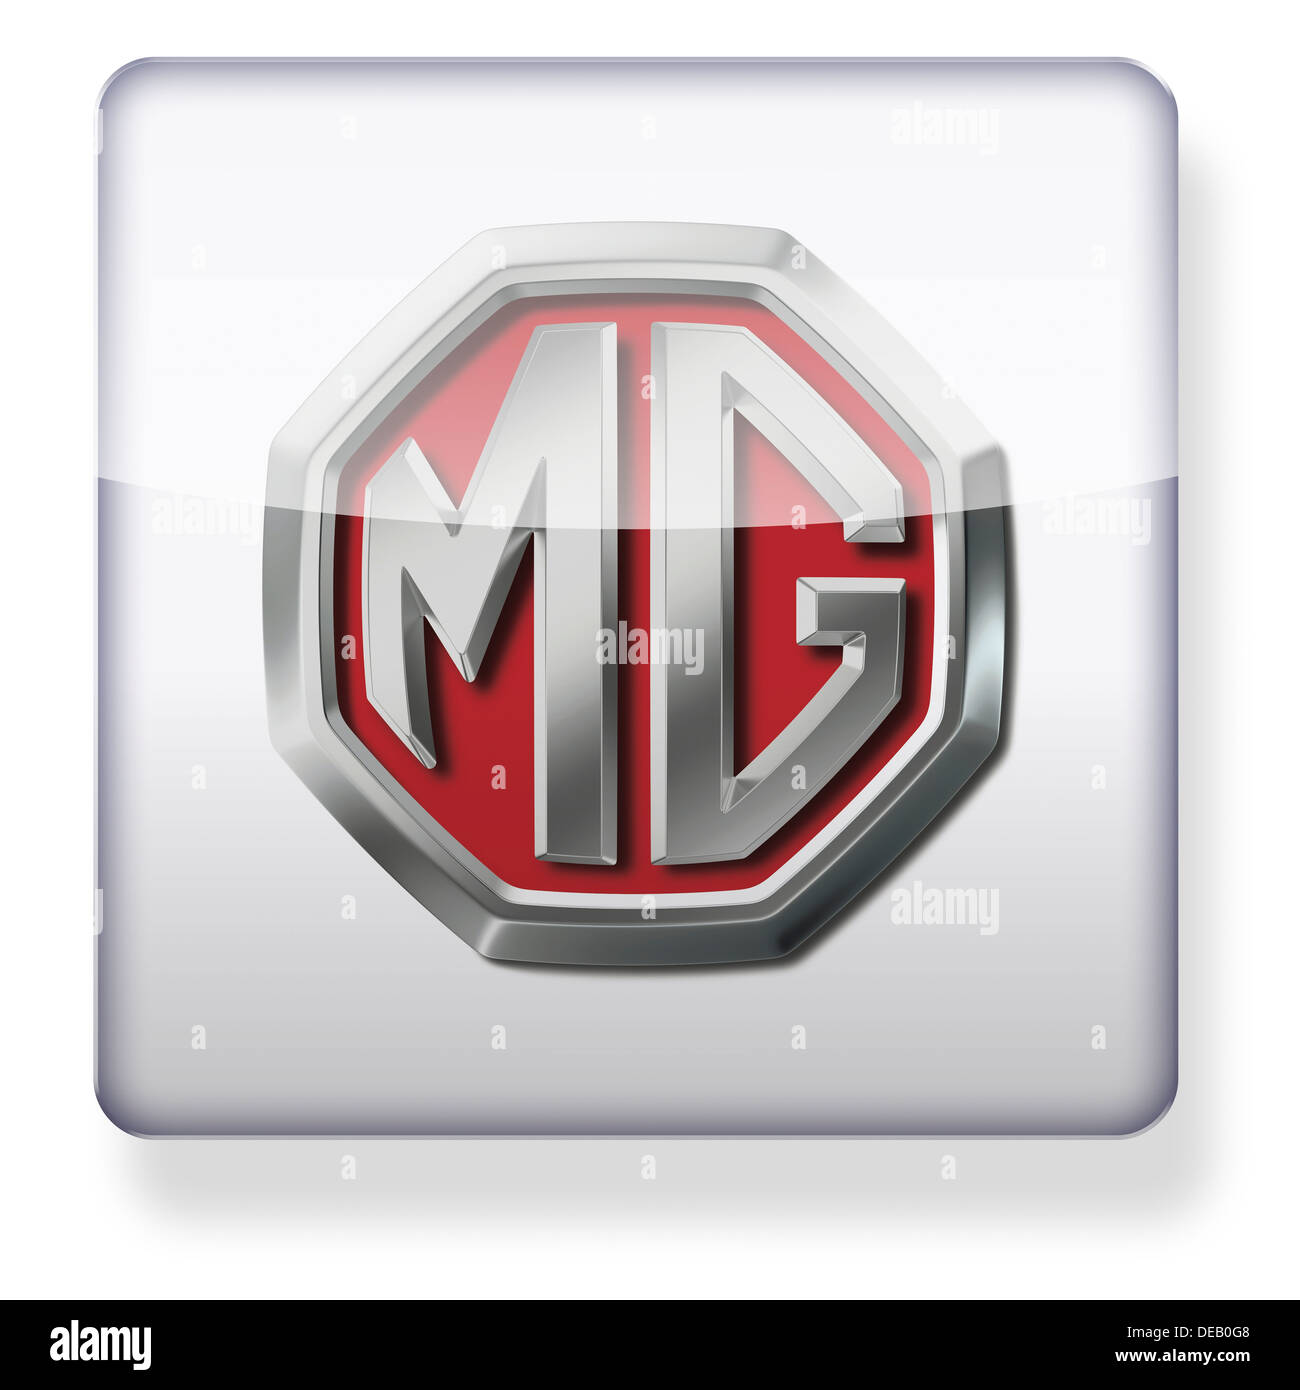 MG car logo as an app icon. Clipping path included. - Stock Image